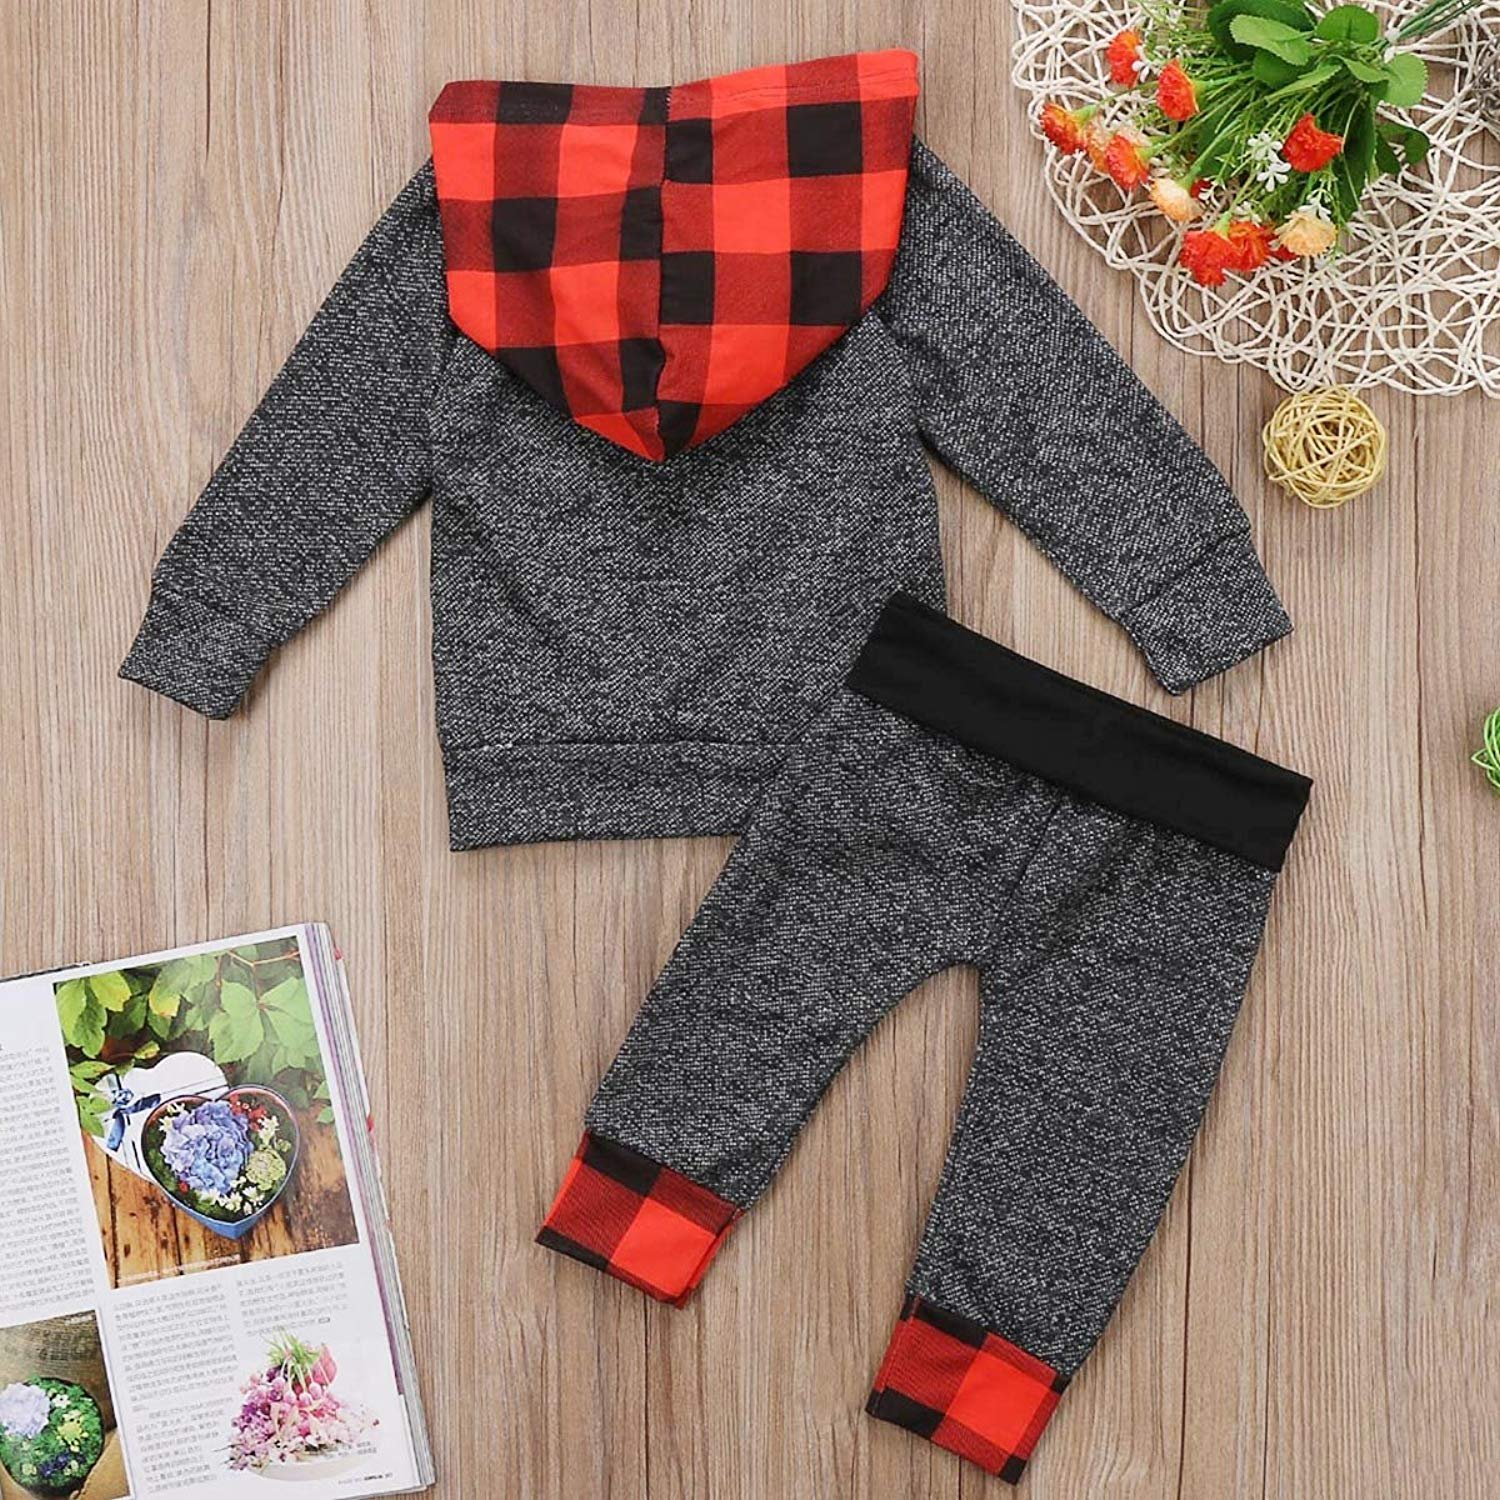 MILWAY Toddler Girls Boys Plaid Hoodies Tops with Pocket 70//0-6M, Multicoloured Pants 2Pc Outfit Set